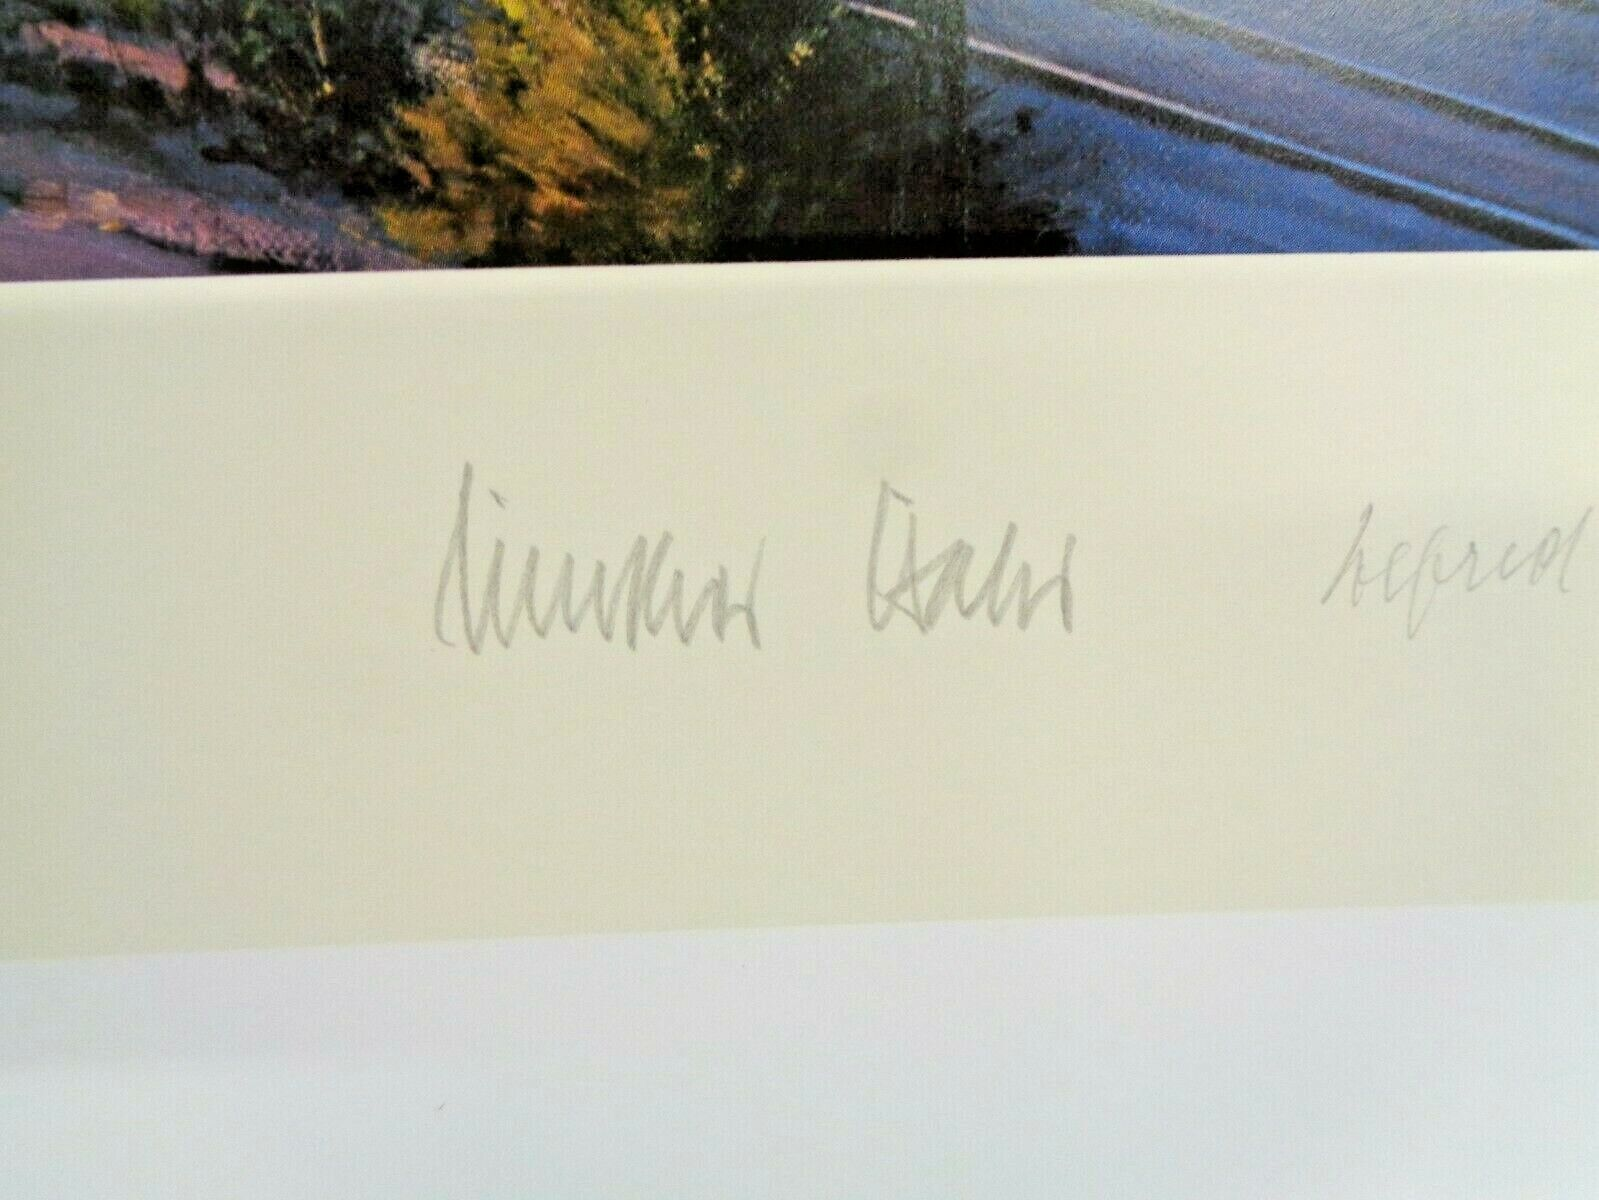 NICOLAS TRUDGIAN REMARQUE PRINT INTO THE CLOAK OF DARKNESS 36/50 SIGNED BY ACES - $345.00